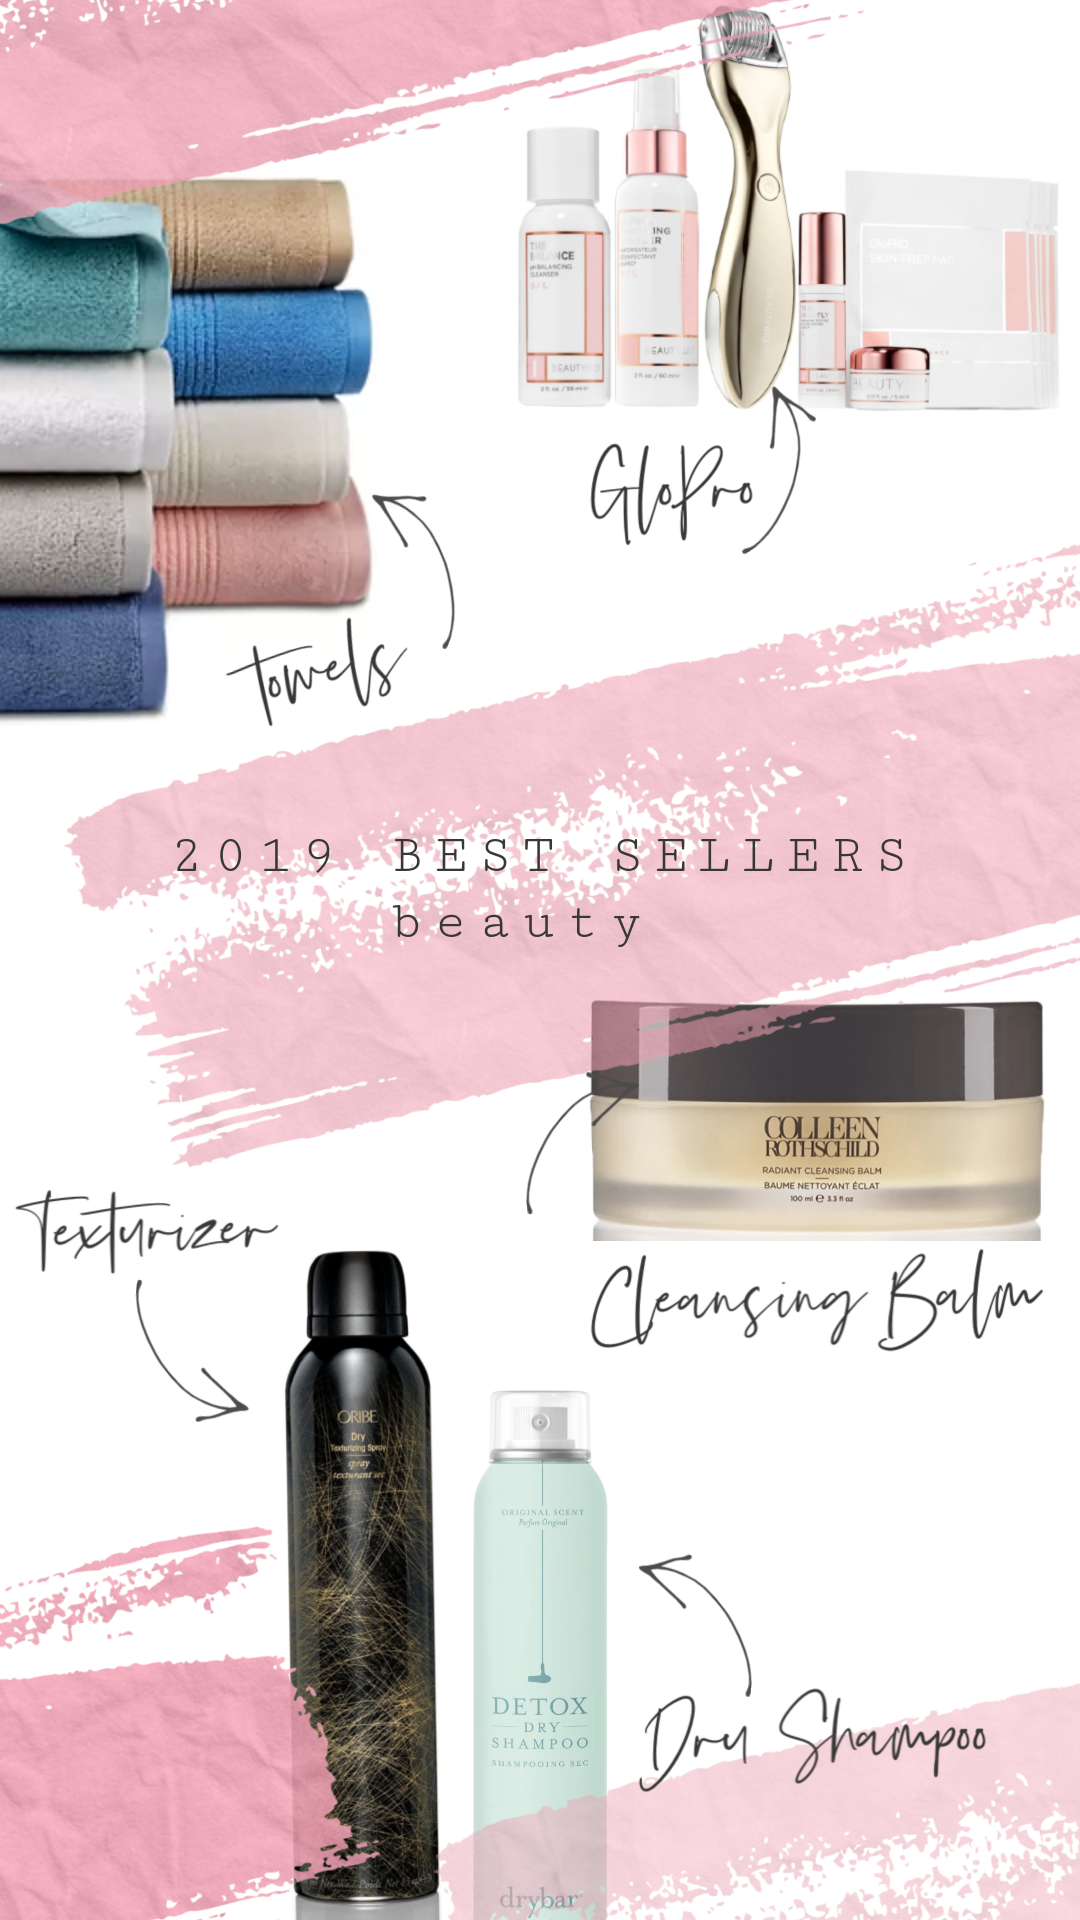 2019 Best Sellers Beauty